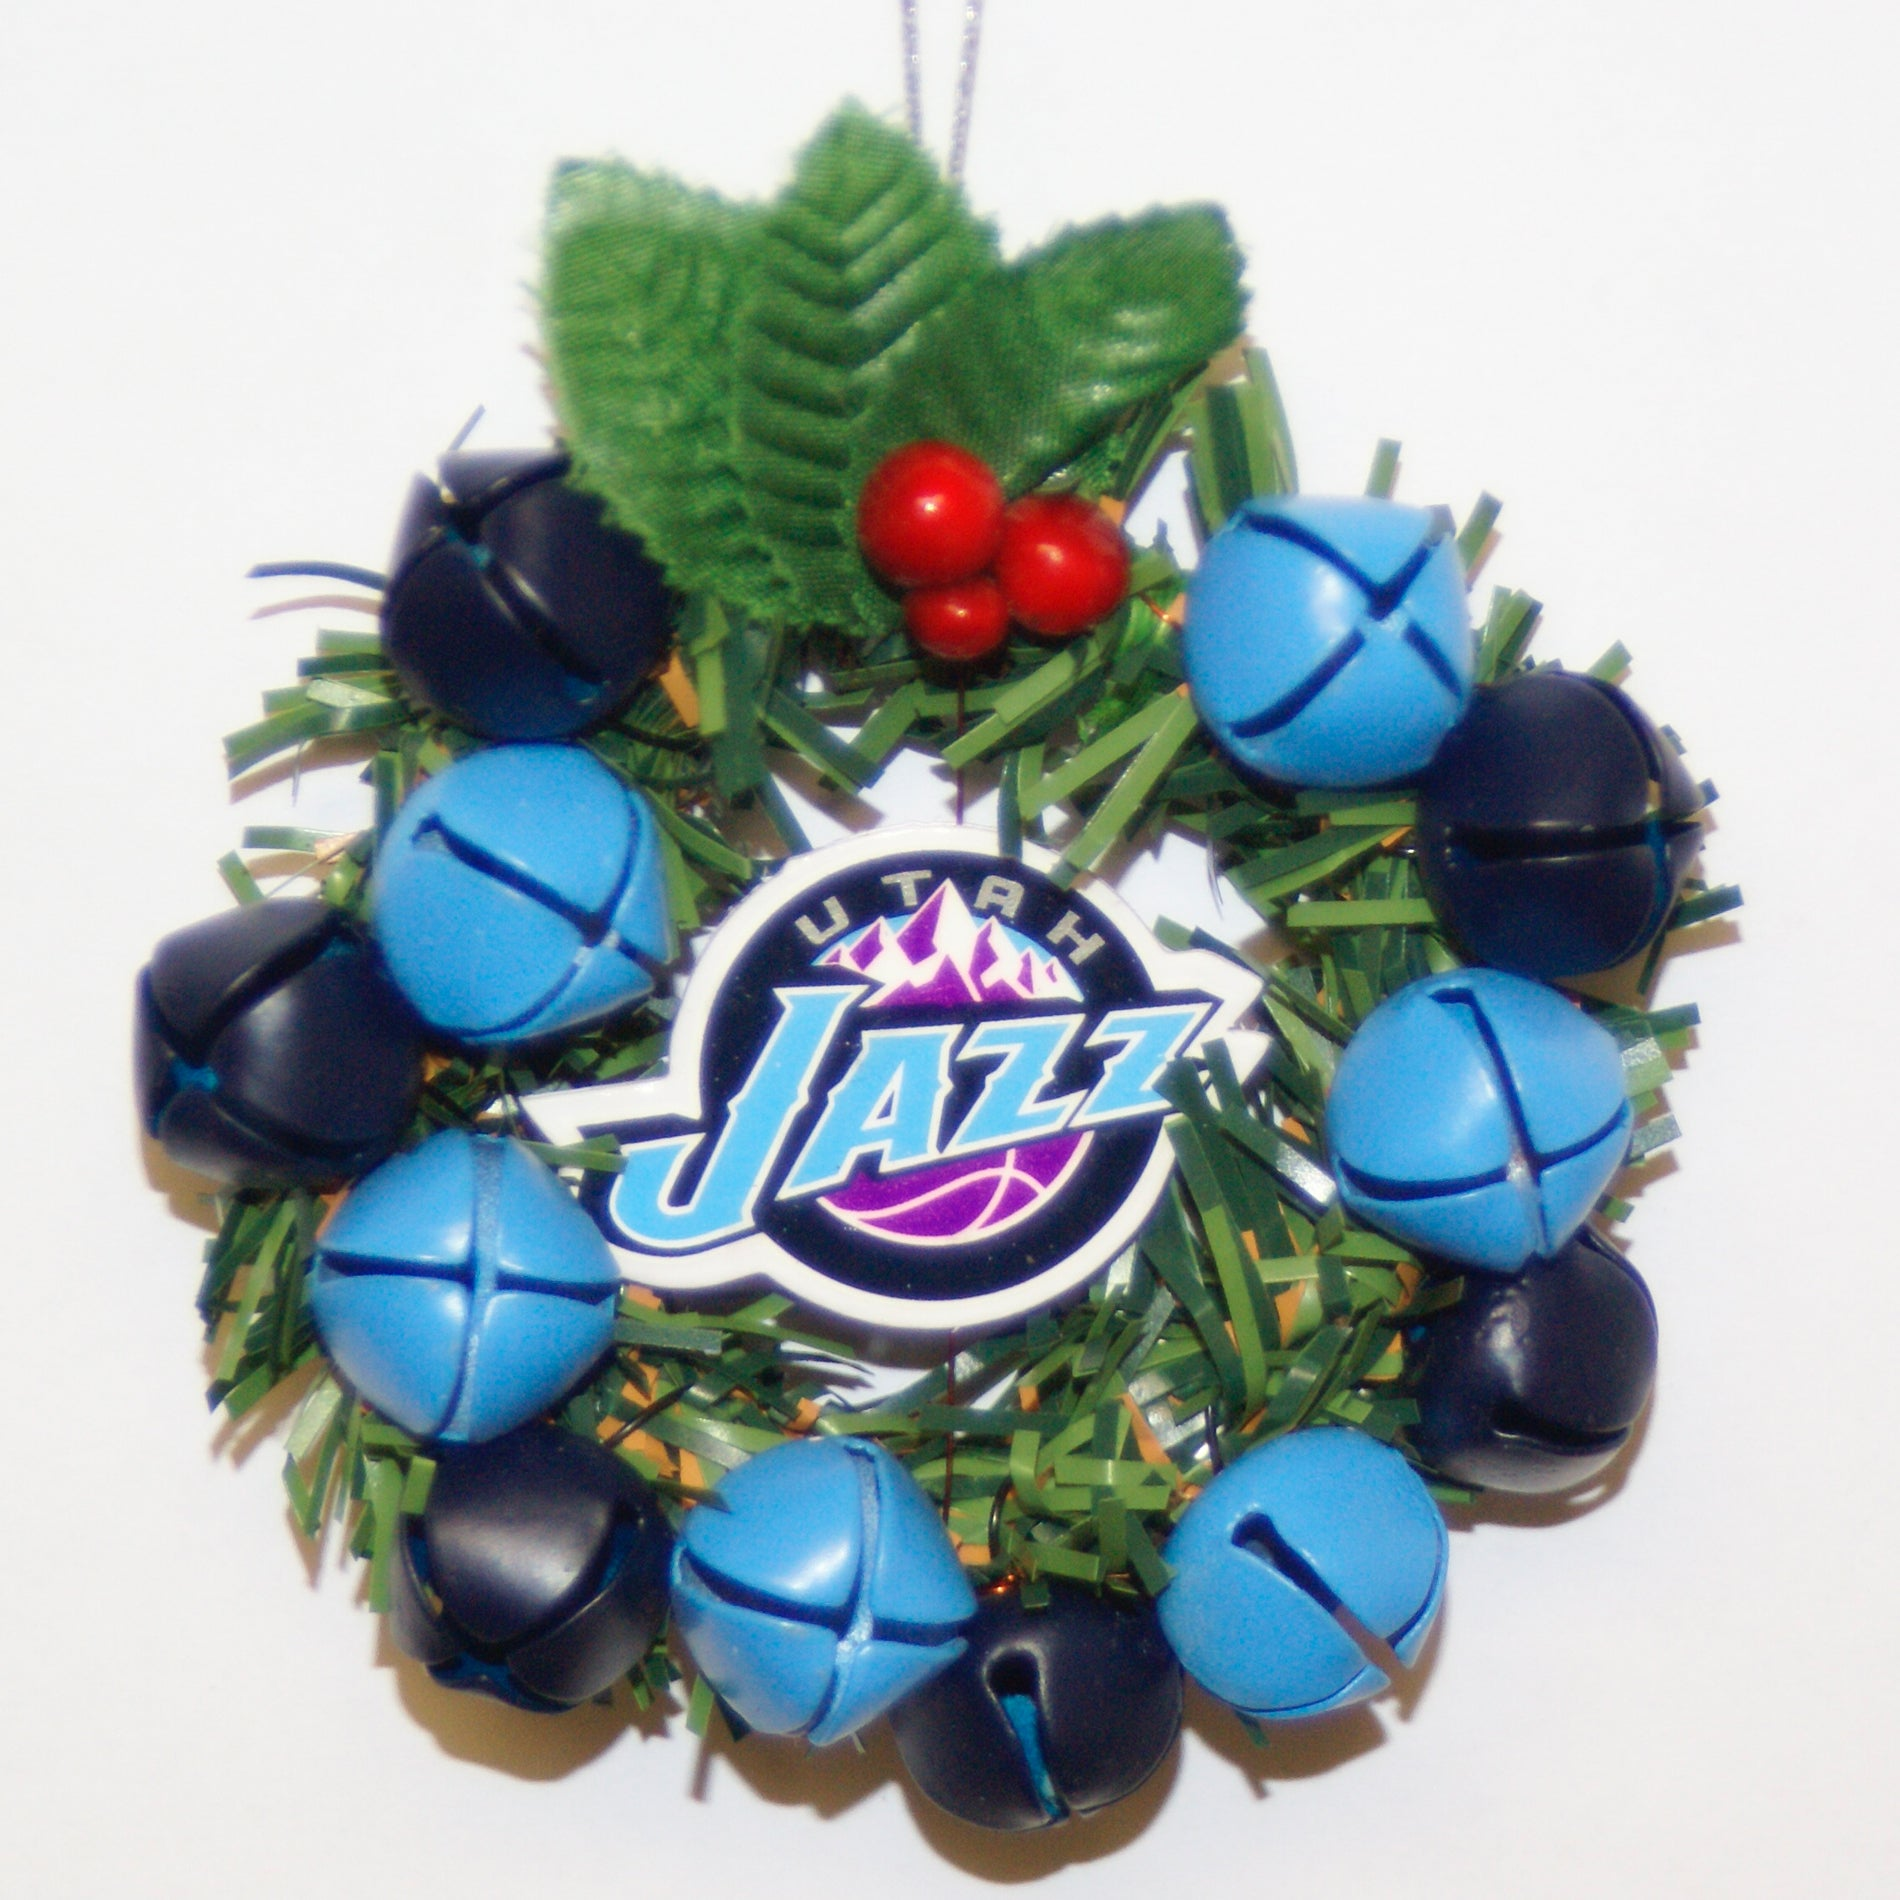 Utah Jazz Wreath Ornament